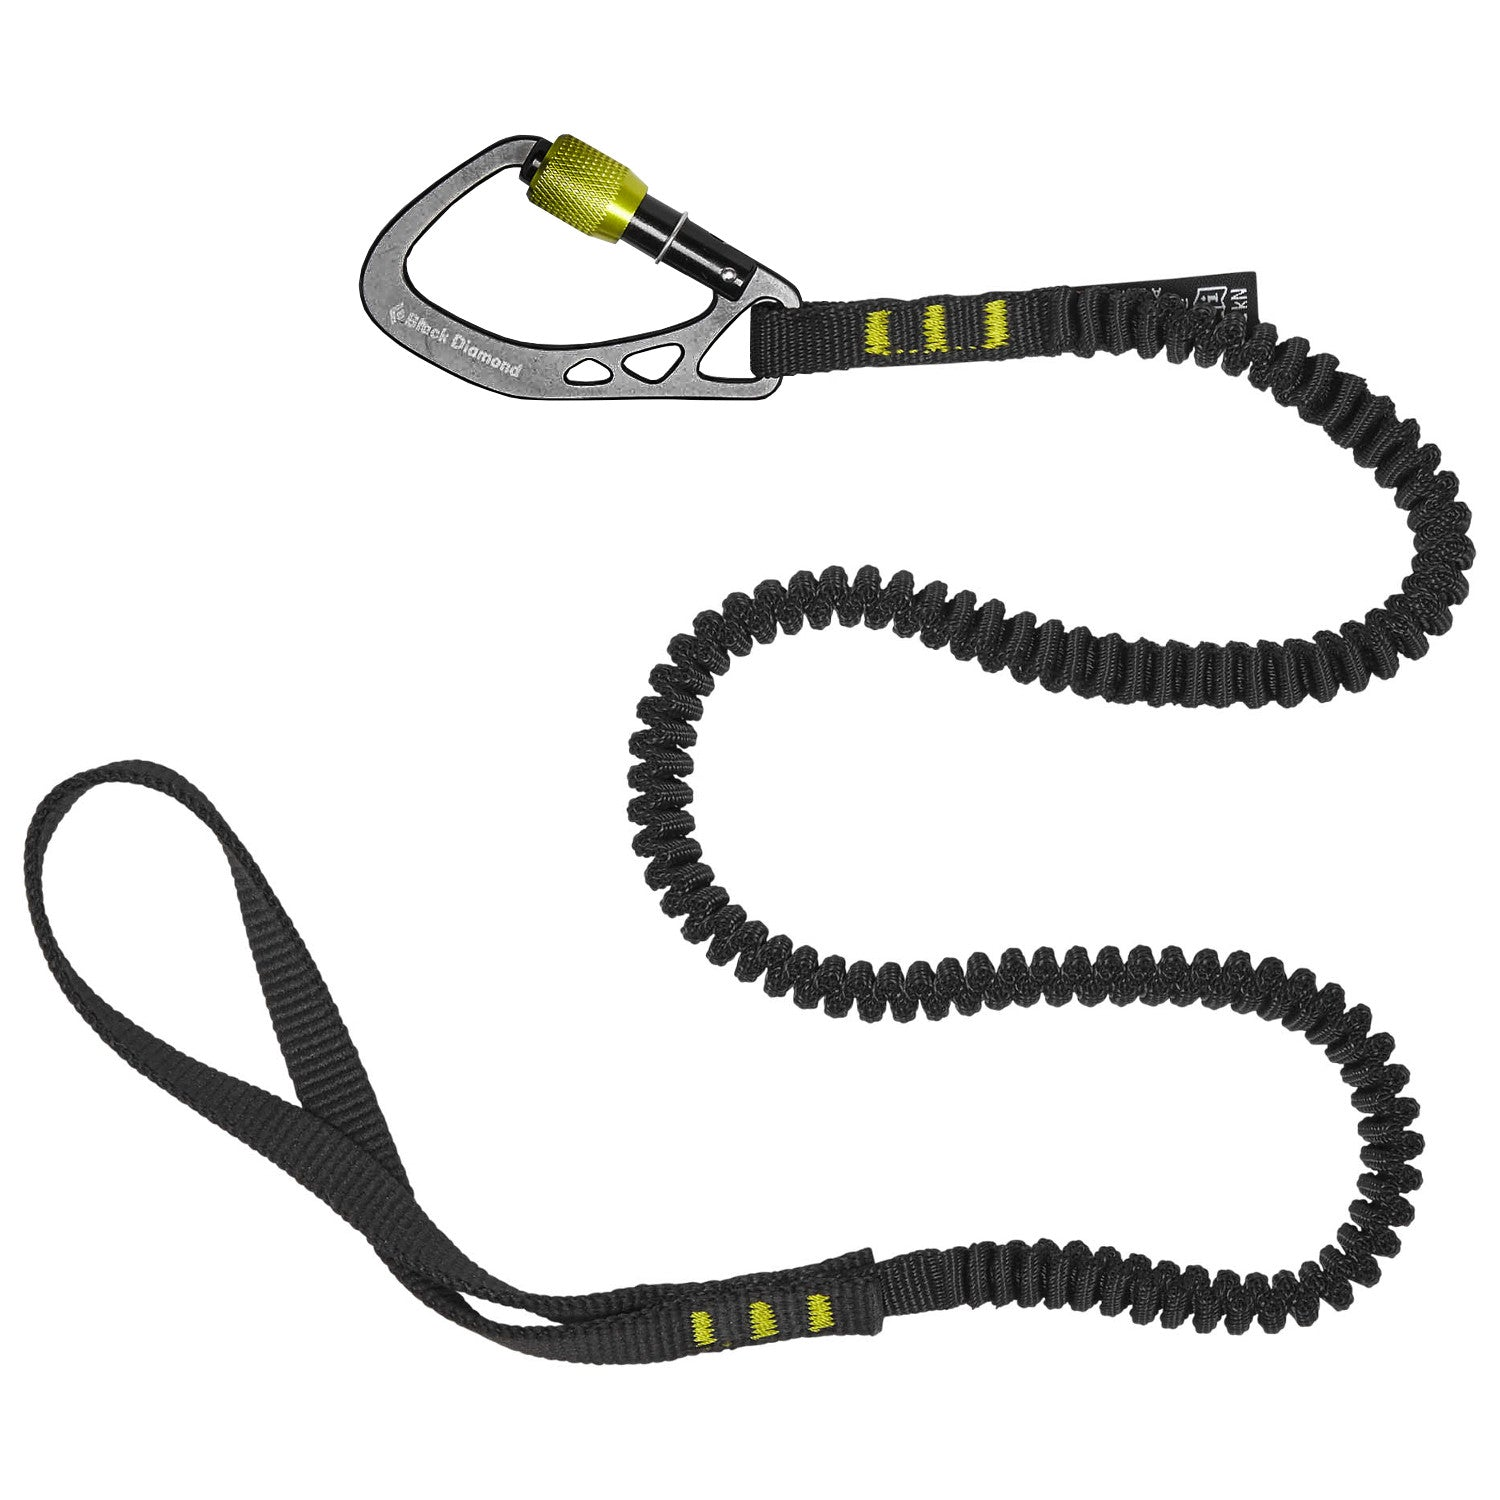 Black Diamond Slinger Leash shown in black with silver Screwgate